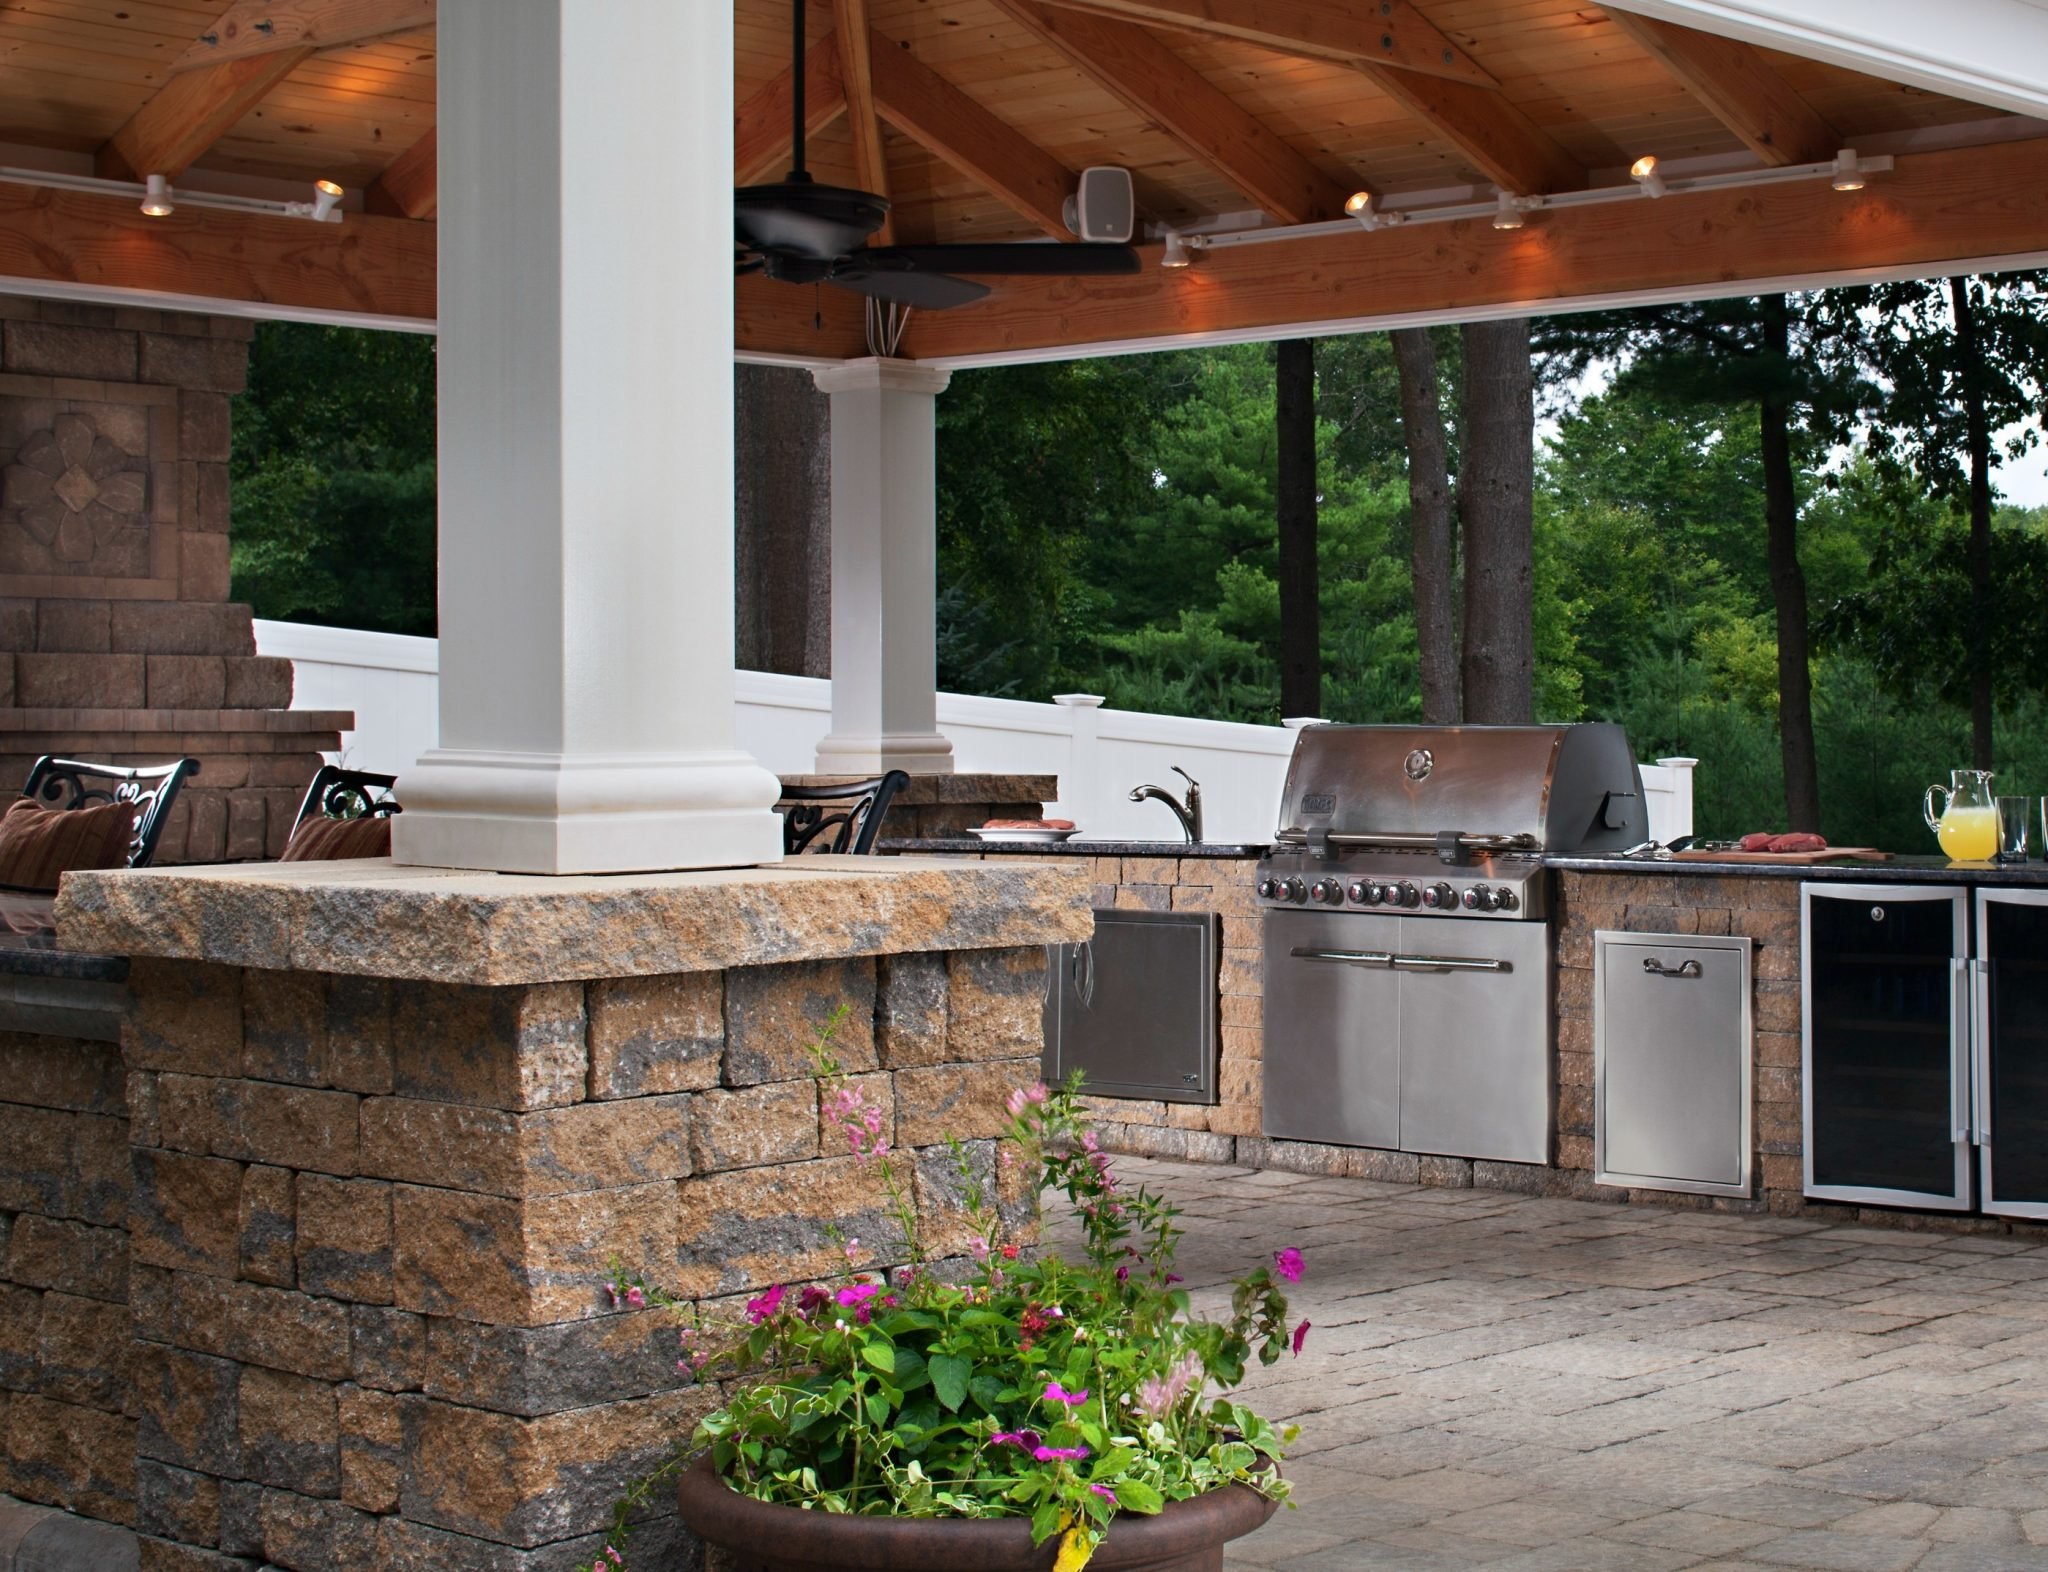 Outdoor Kitchen Trends: 9 HOT Ideas For Your Backyard ... on Patio Kitchen  id=66057